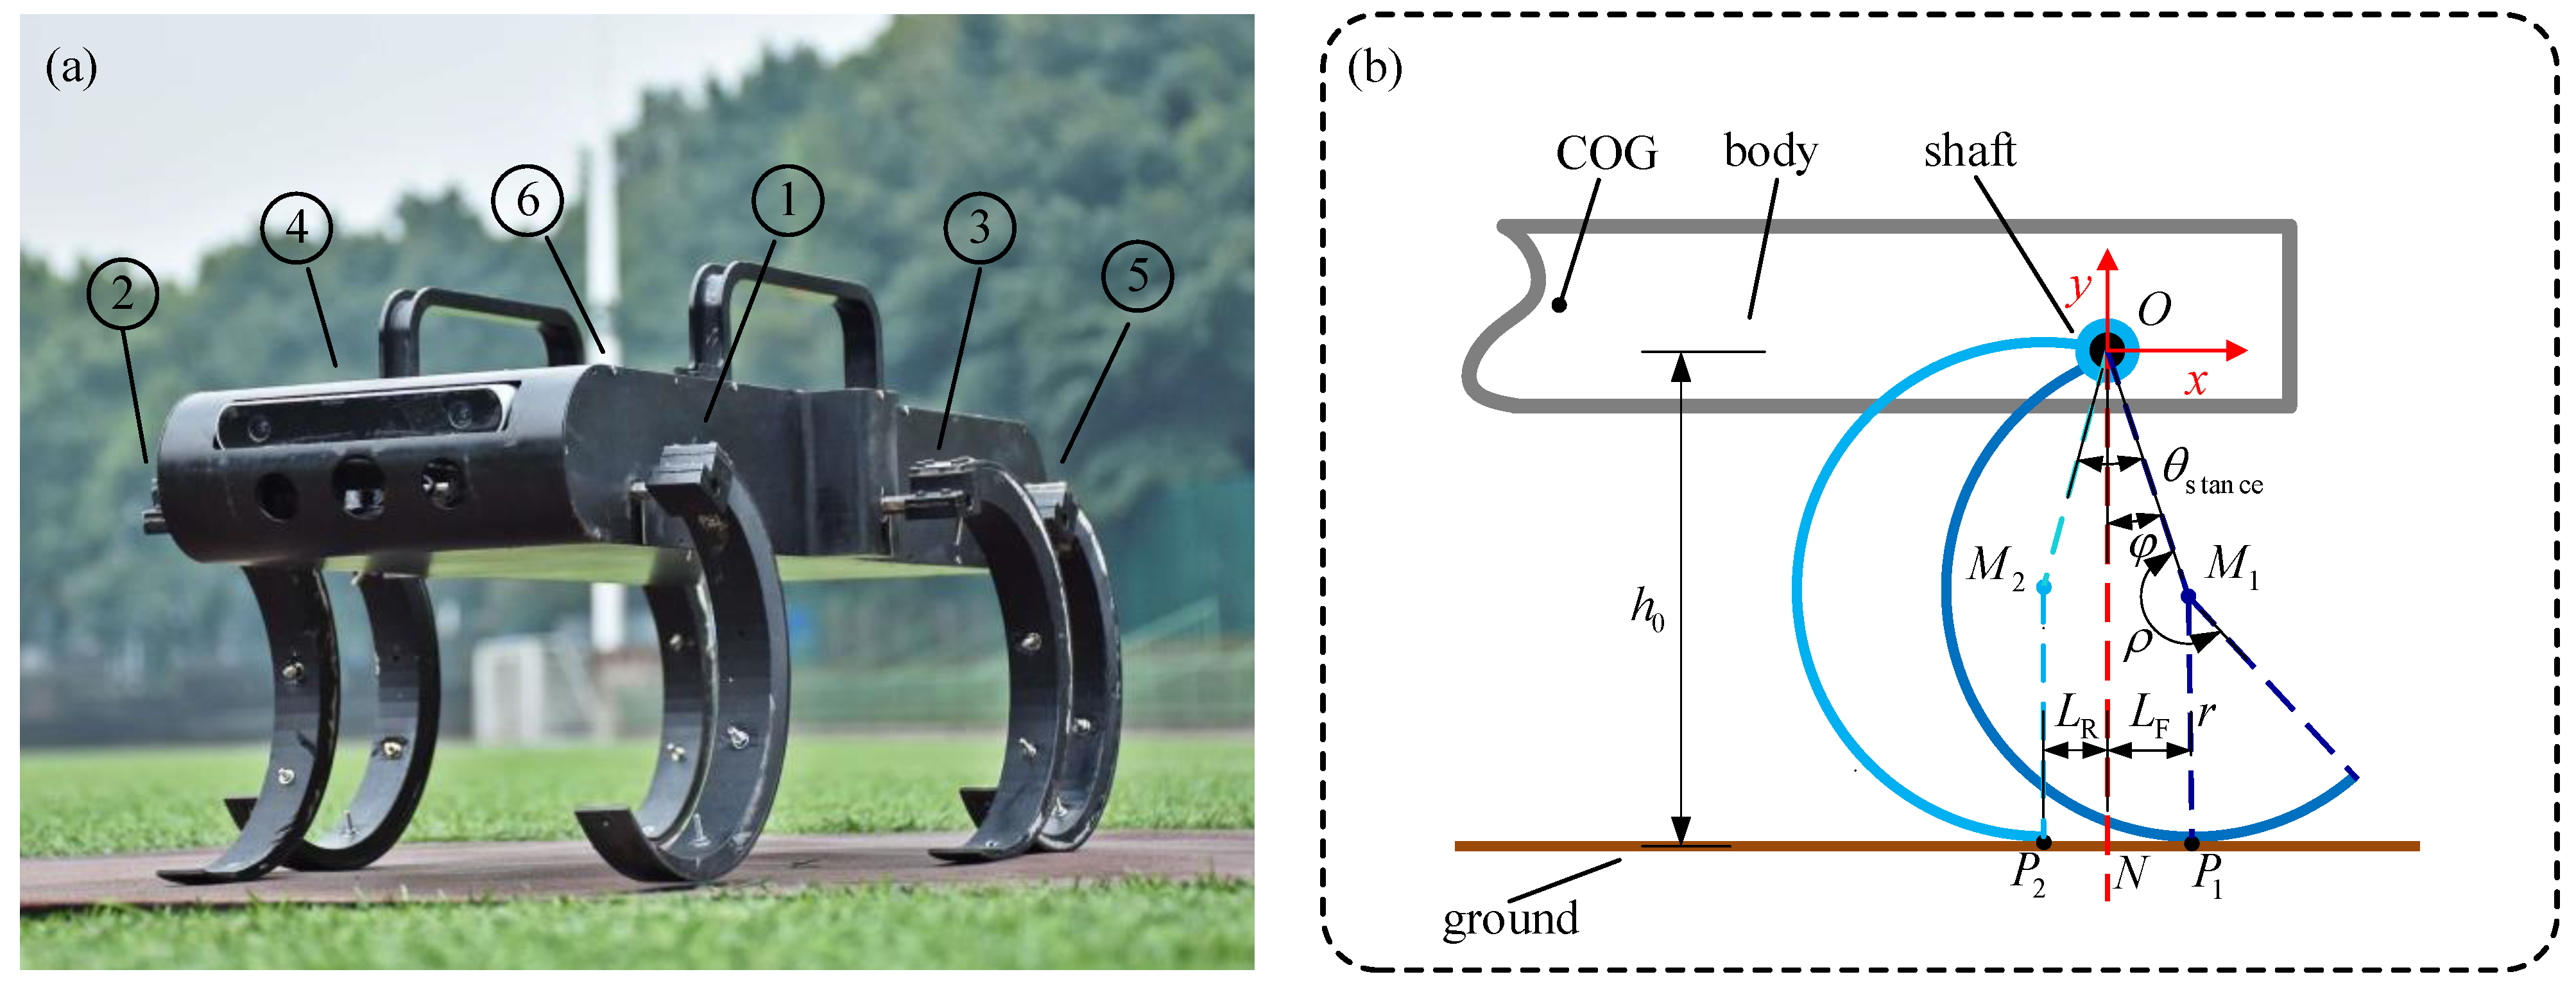 Sensors | Free Full-Text | CPG-Based Gait Generation of the